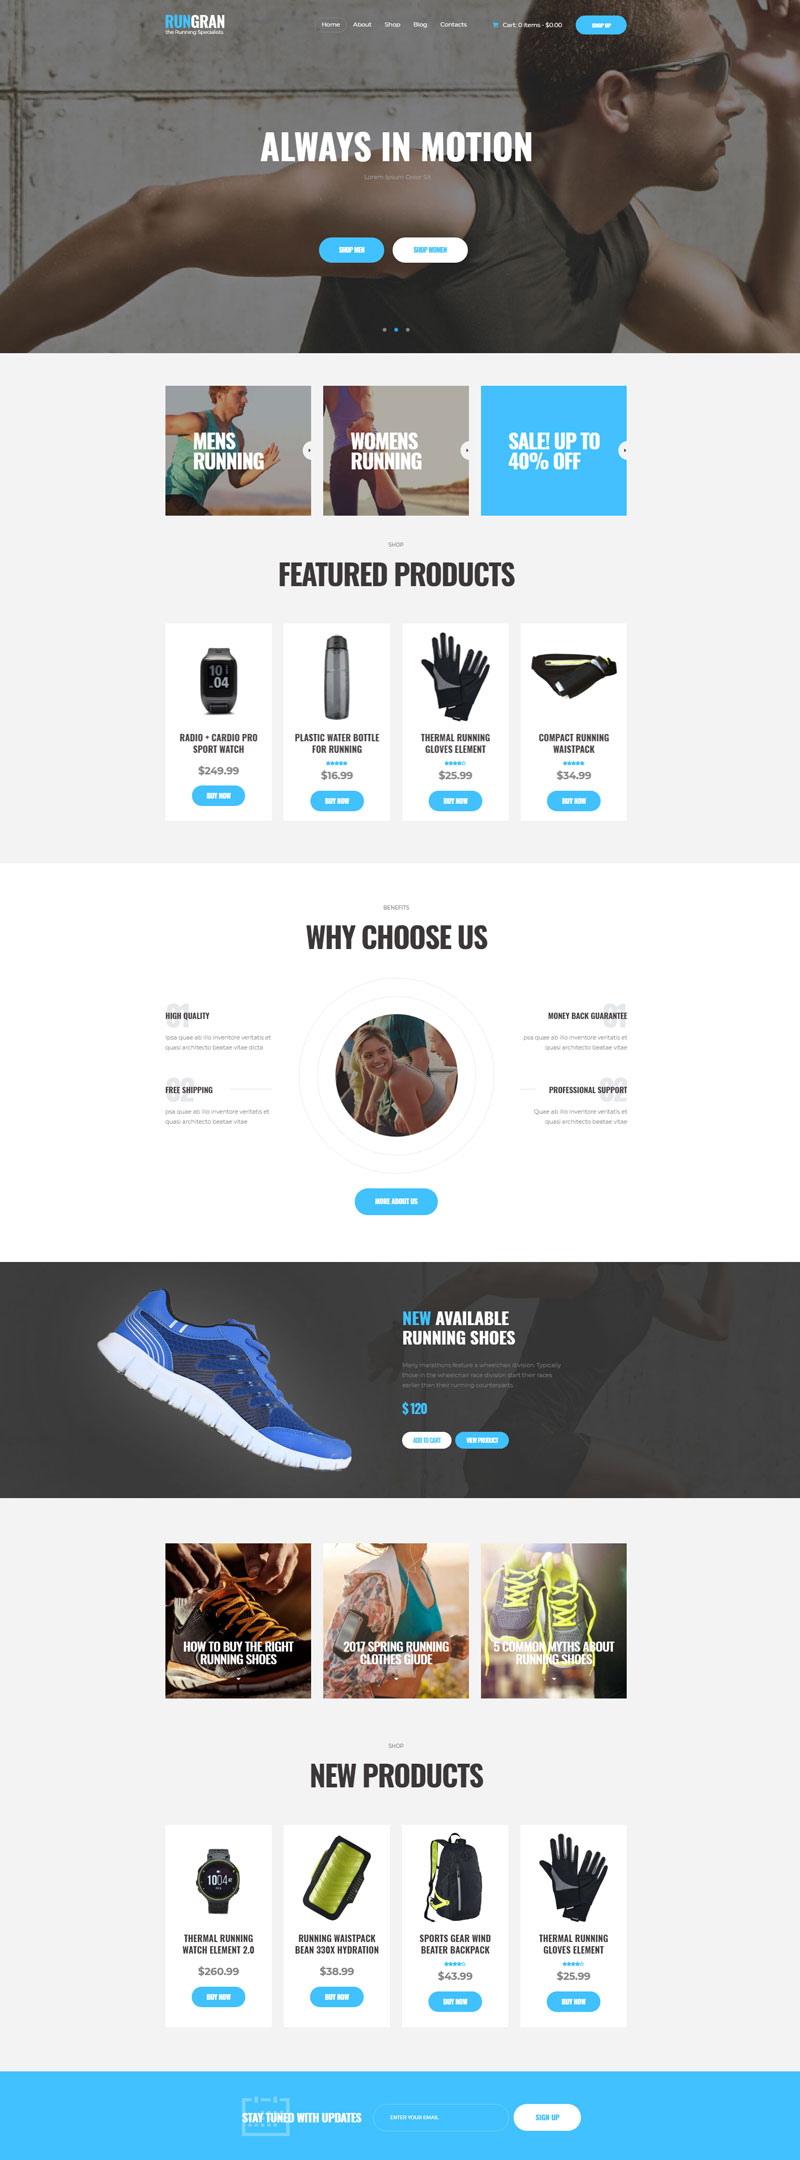 Run-Gran-Sports-Apparel-&-Gear-Store-Wordpress-Ecommerce-Woocommerce-theme